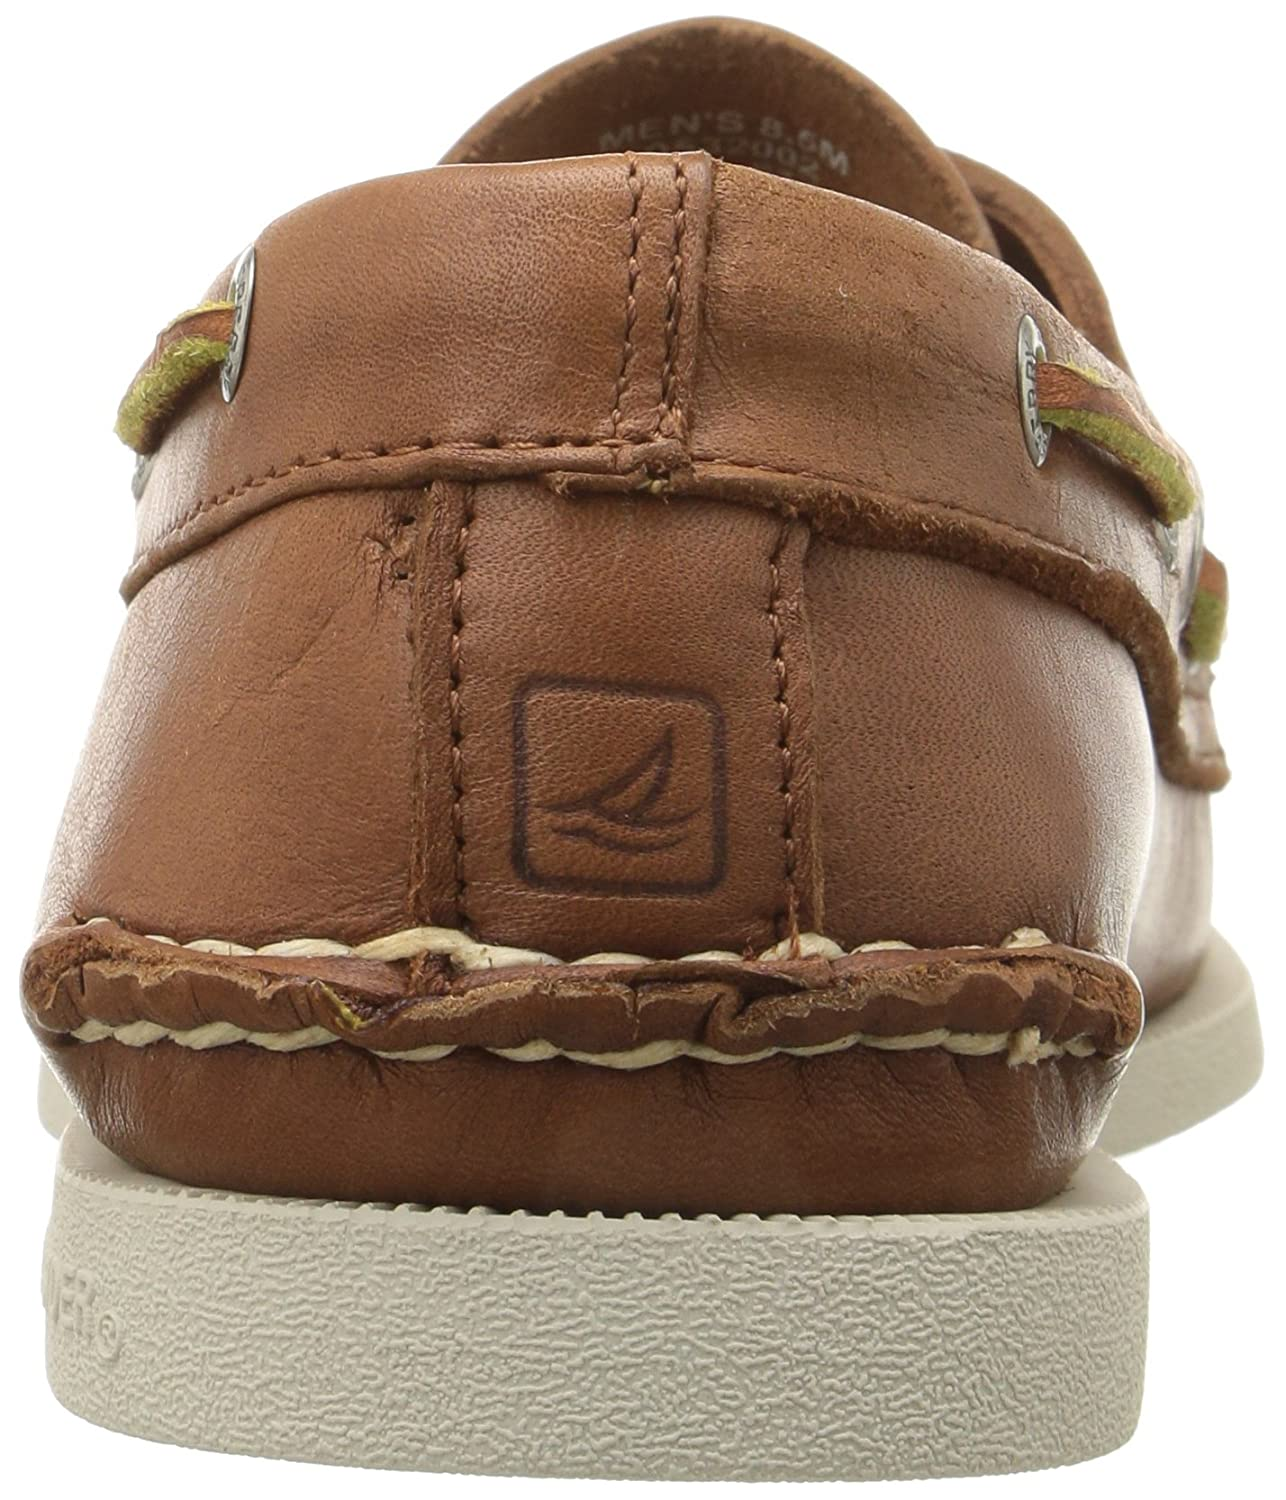 Sperry Top-Sider Herren A/O 2-Eye (Tan) Leder Bootsschuh Braun (Tan) 2-Eye 579402